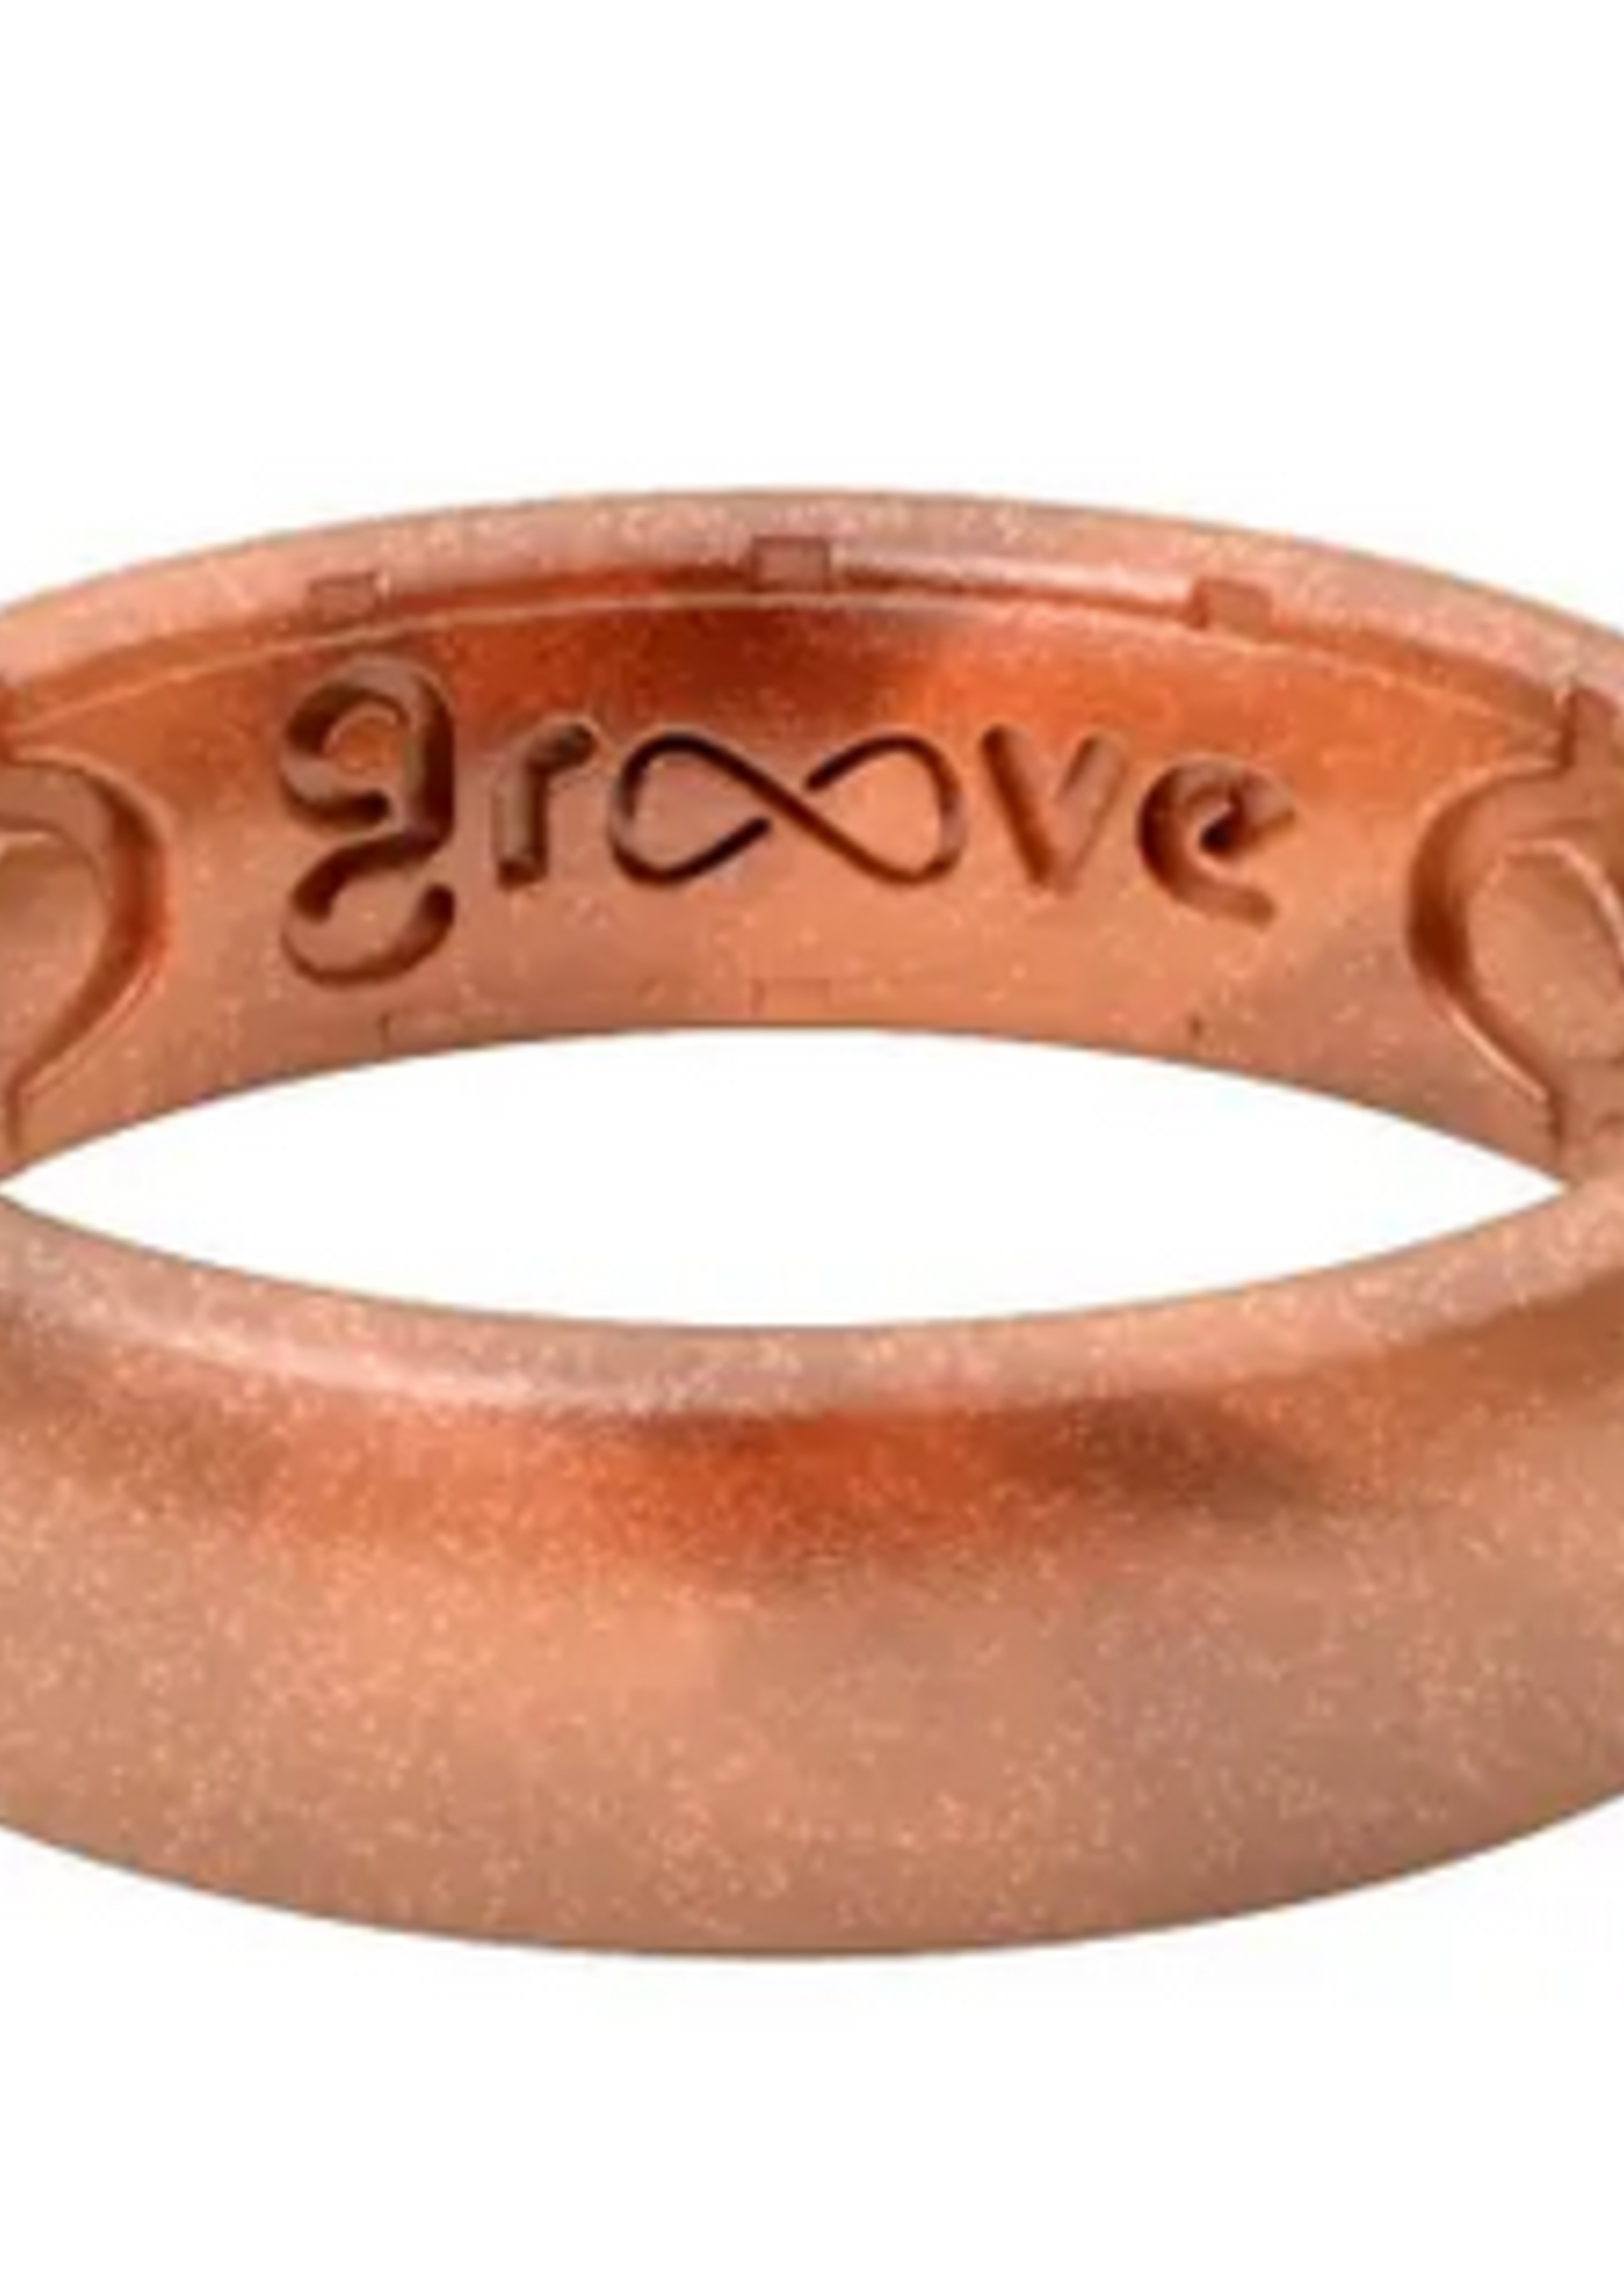 Groove Life Groove Life Thin Solid